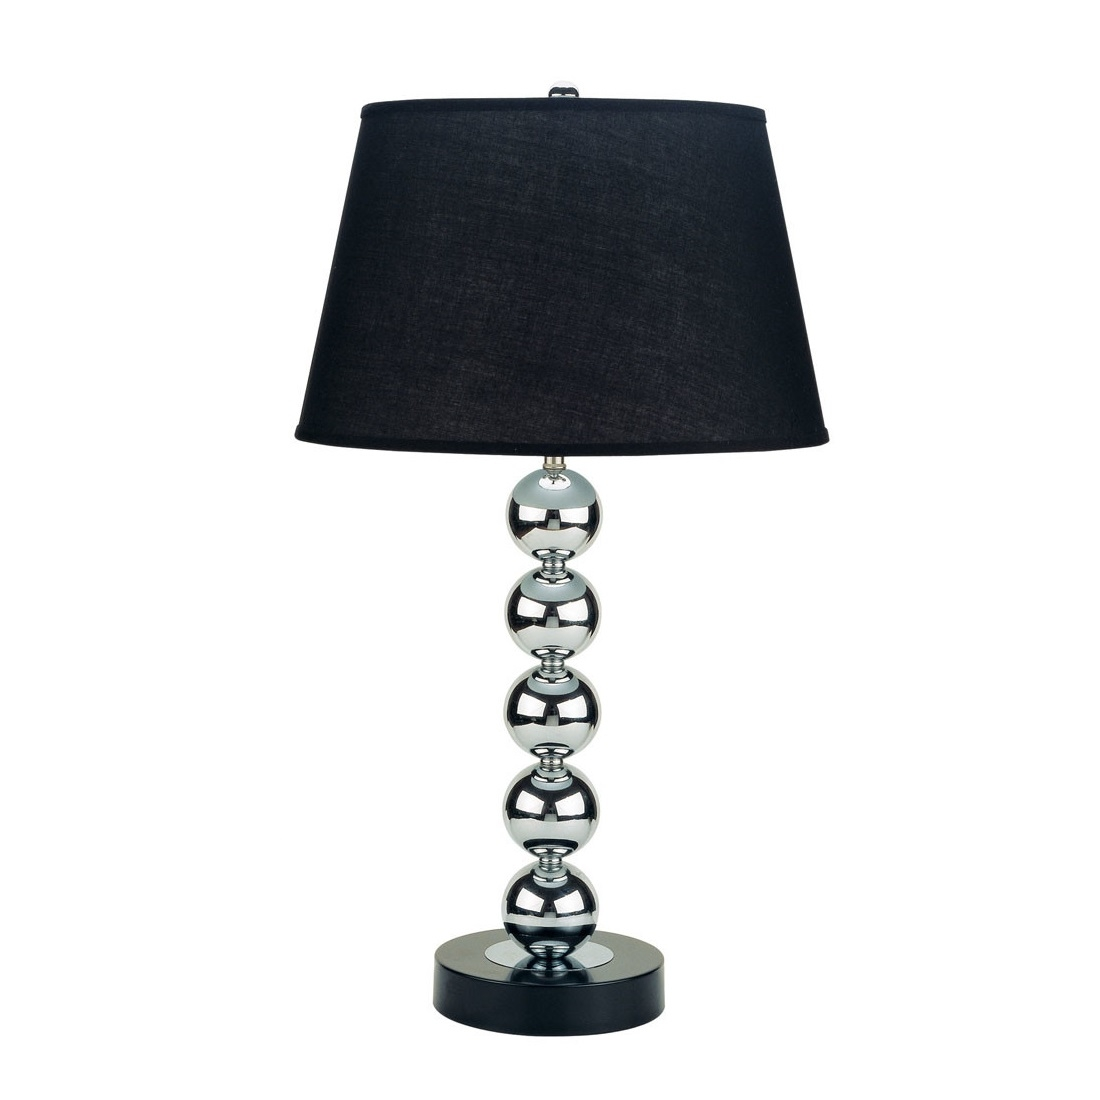 Ore Metal Modern Table Lamp With Empire Shade L Brilliant